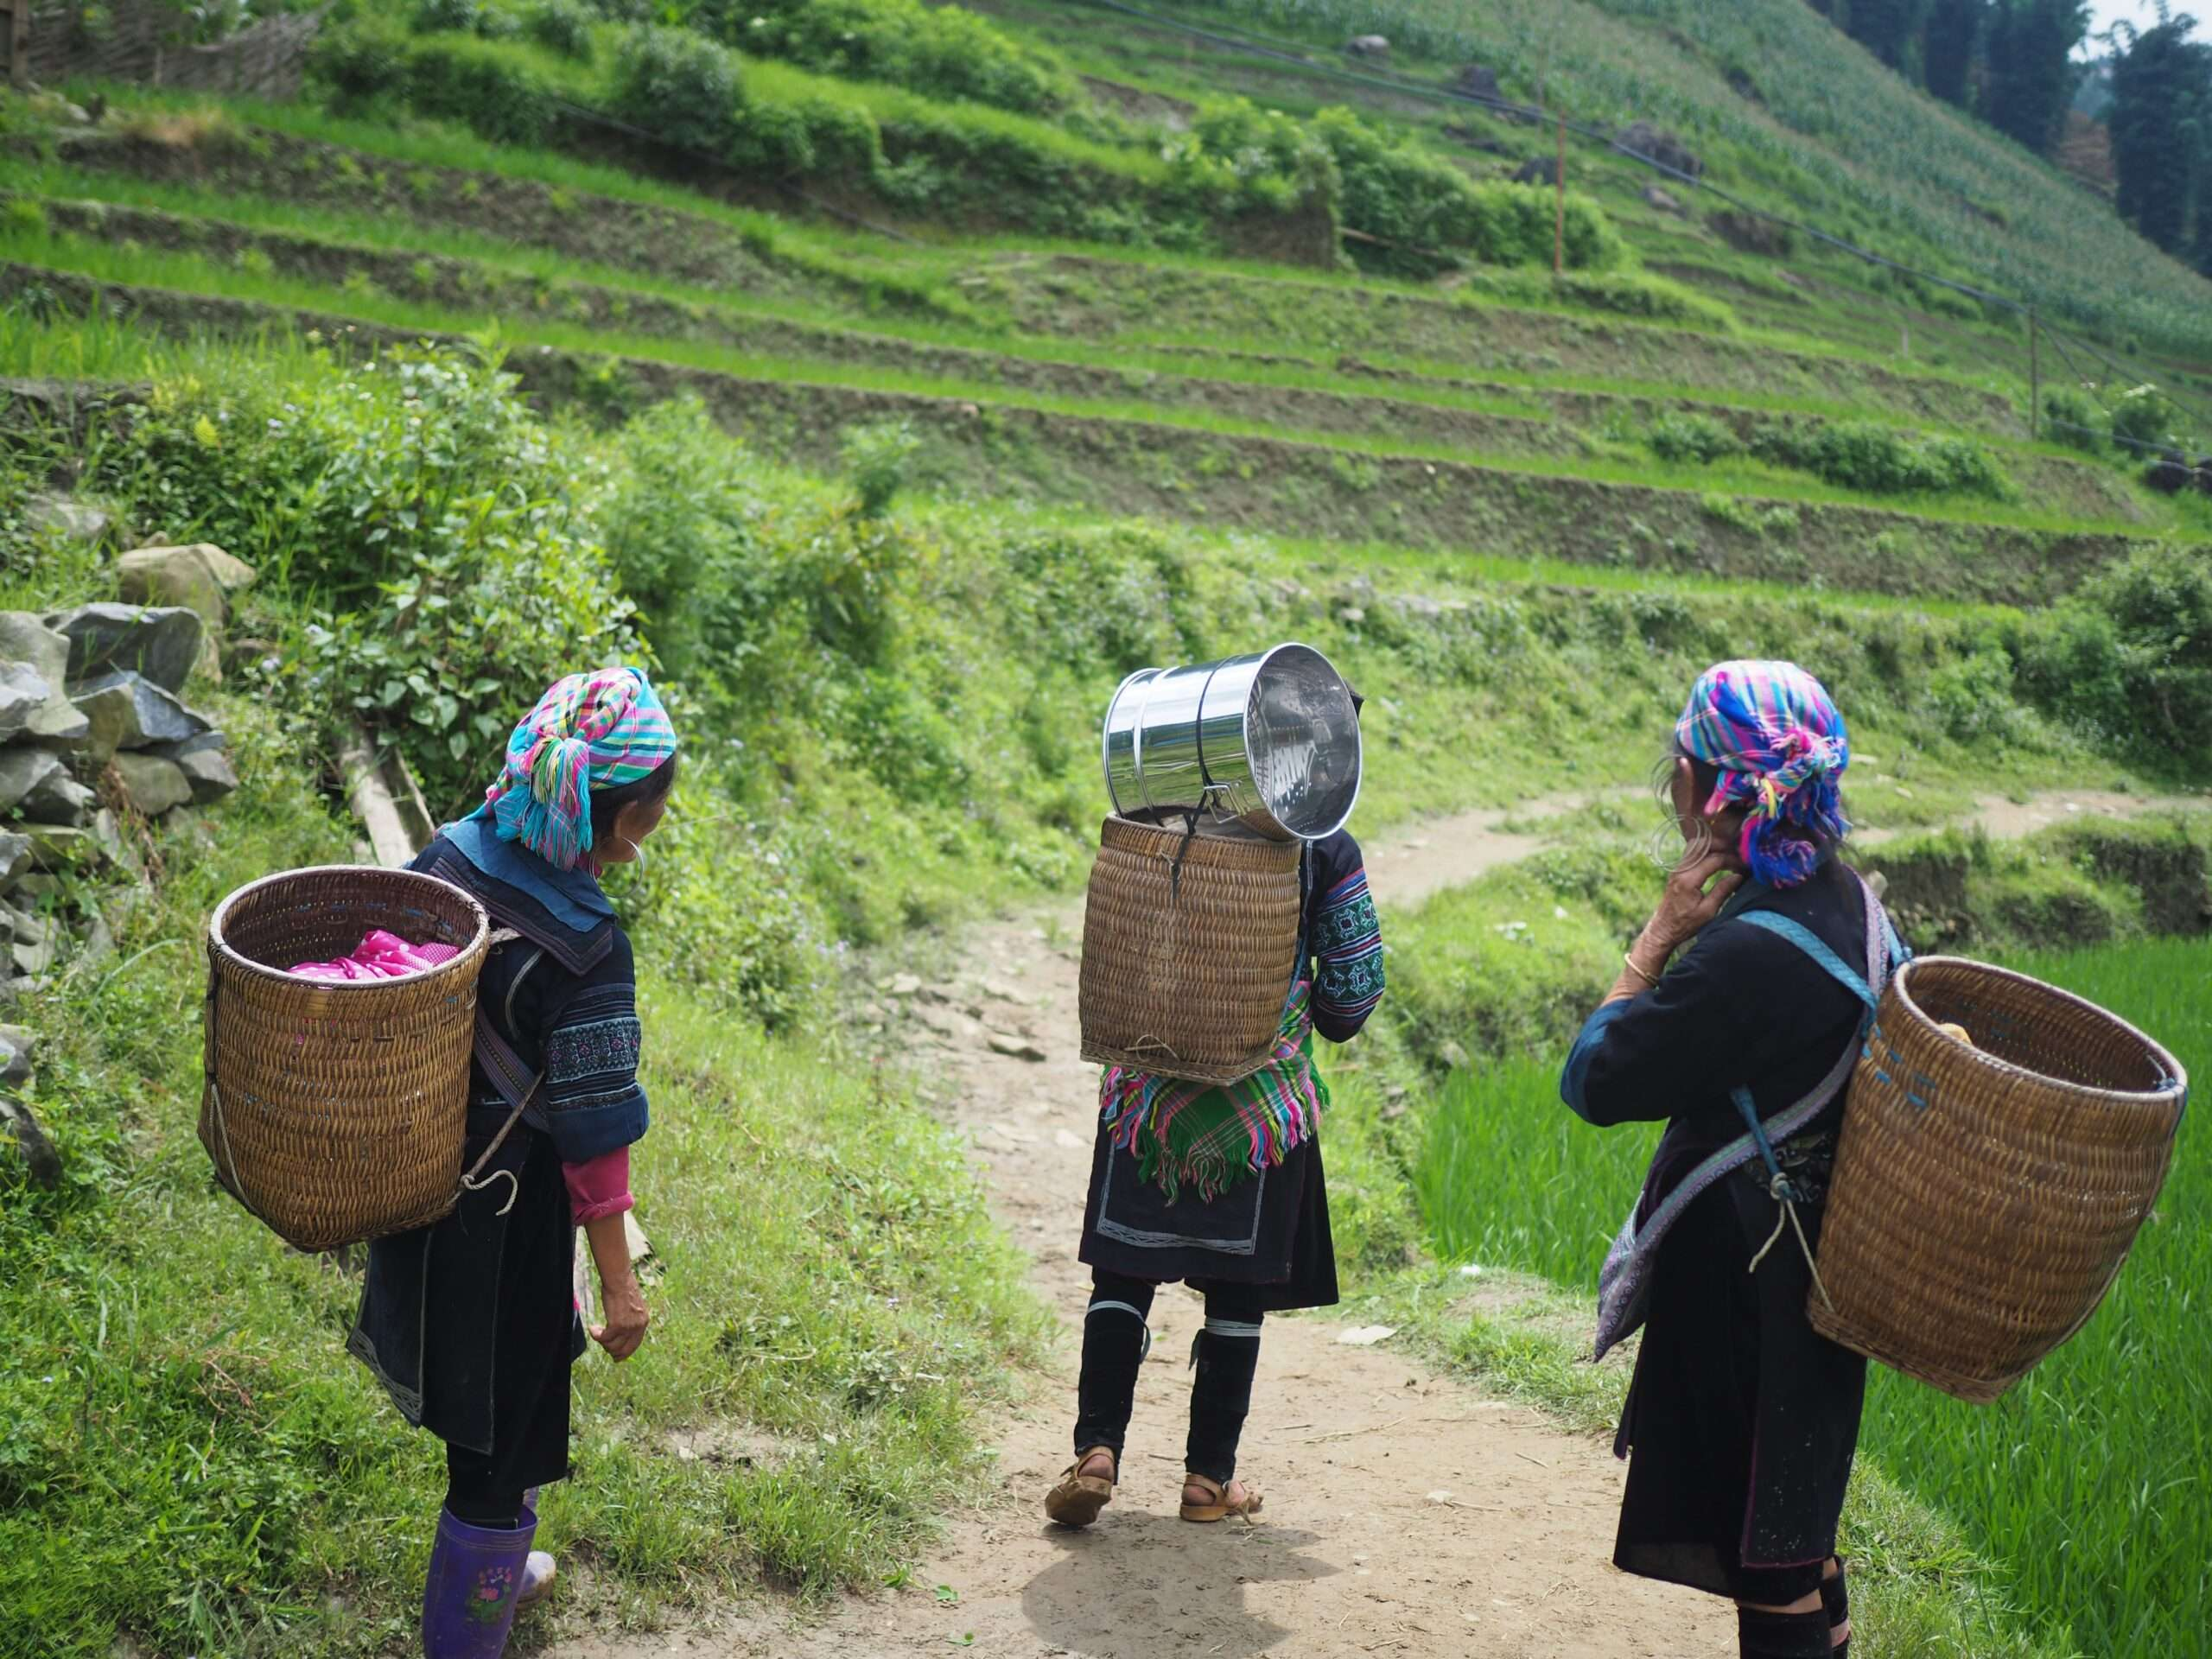 three ladies in traditional Vietnamese tribal dress carry woven baskets on their backs through the hills in Sapa